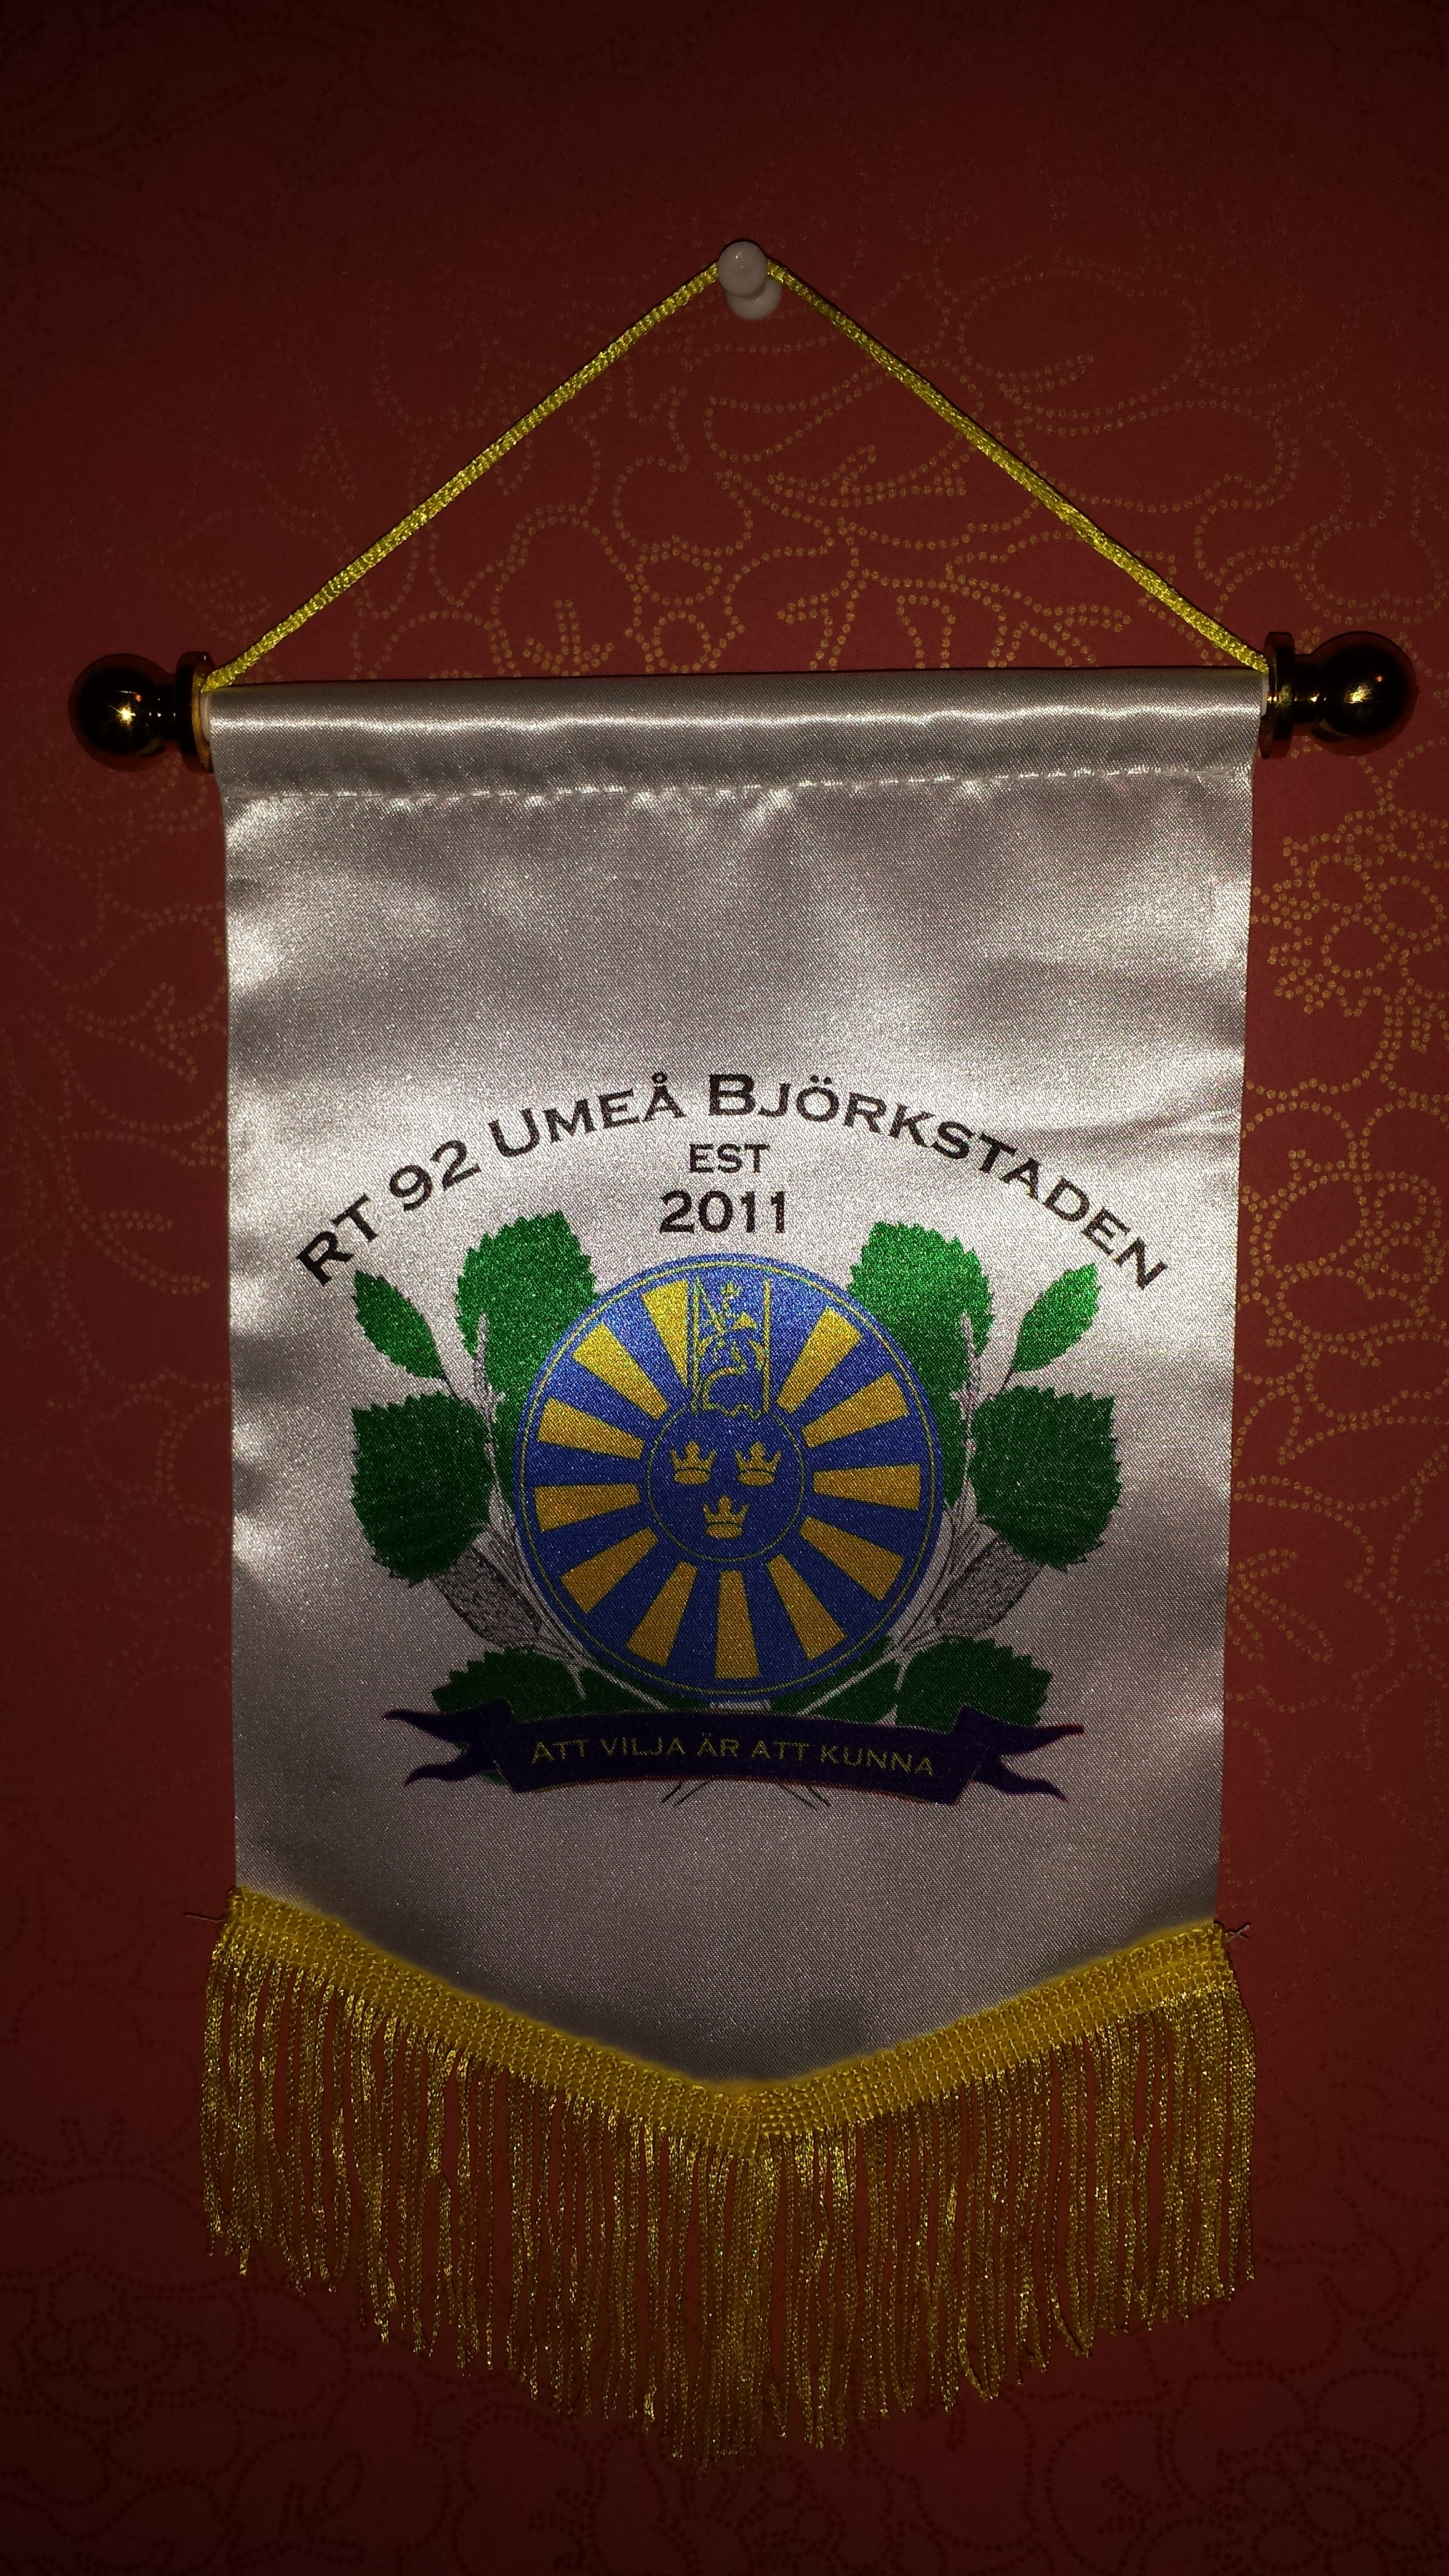 Our own banner